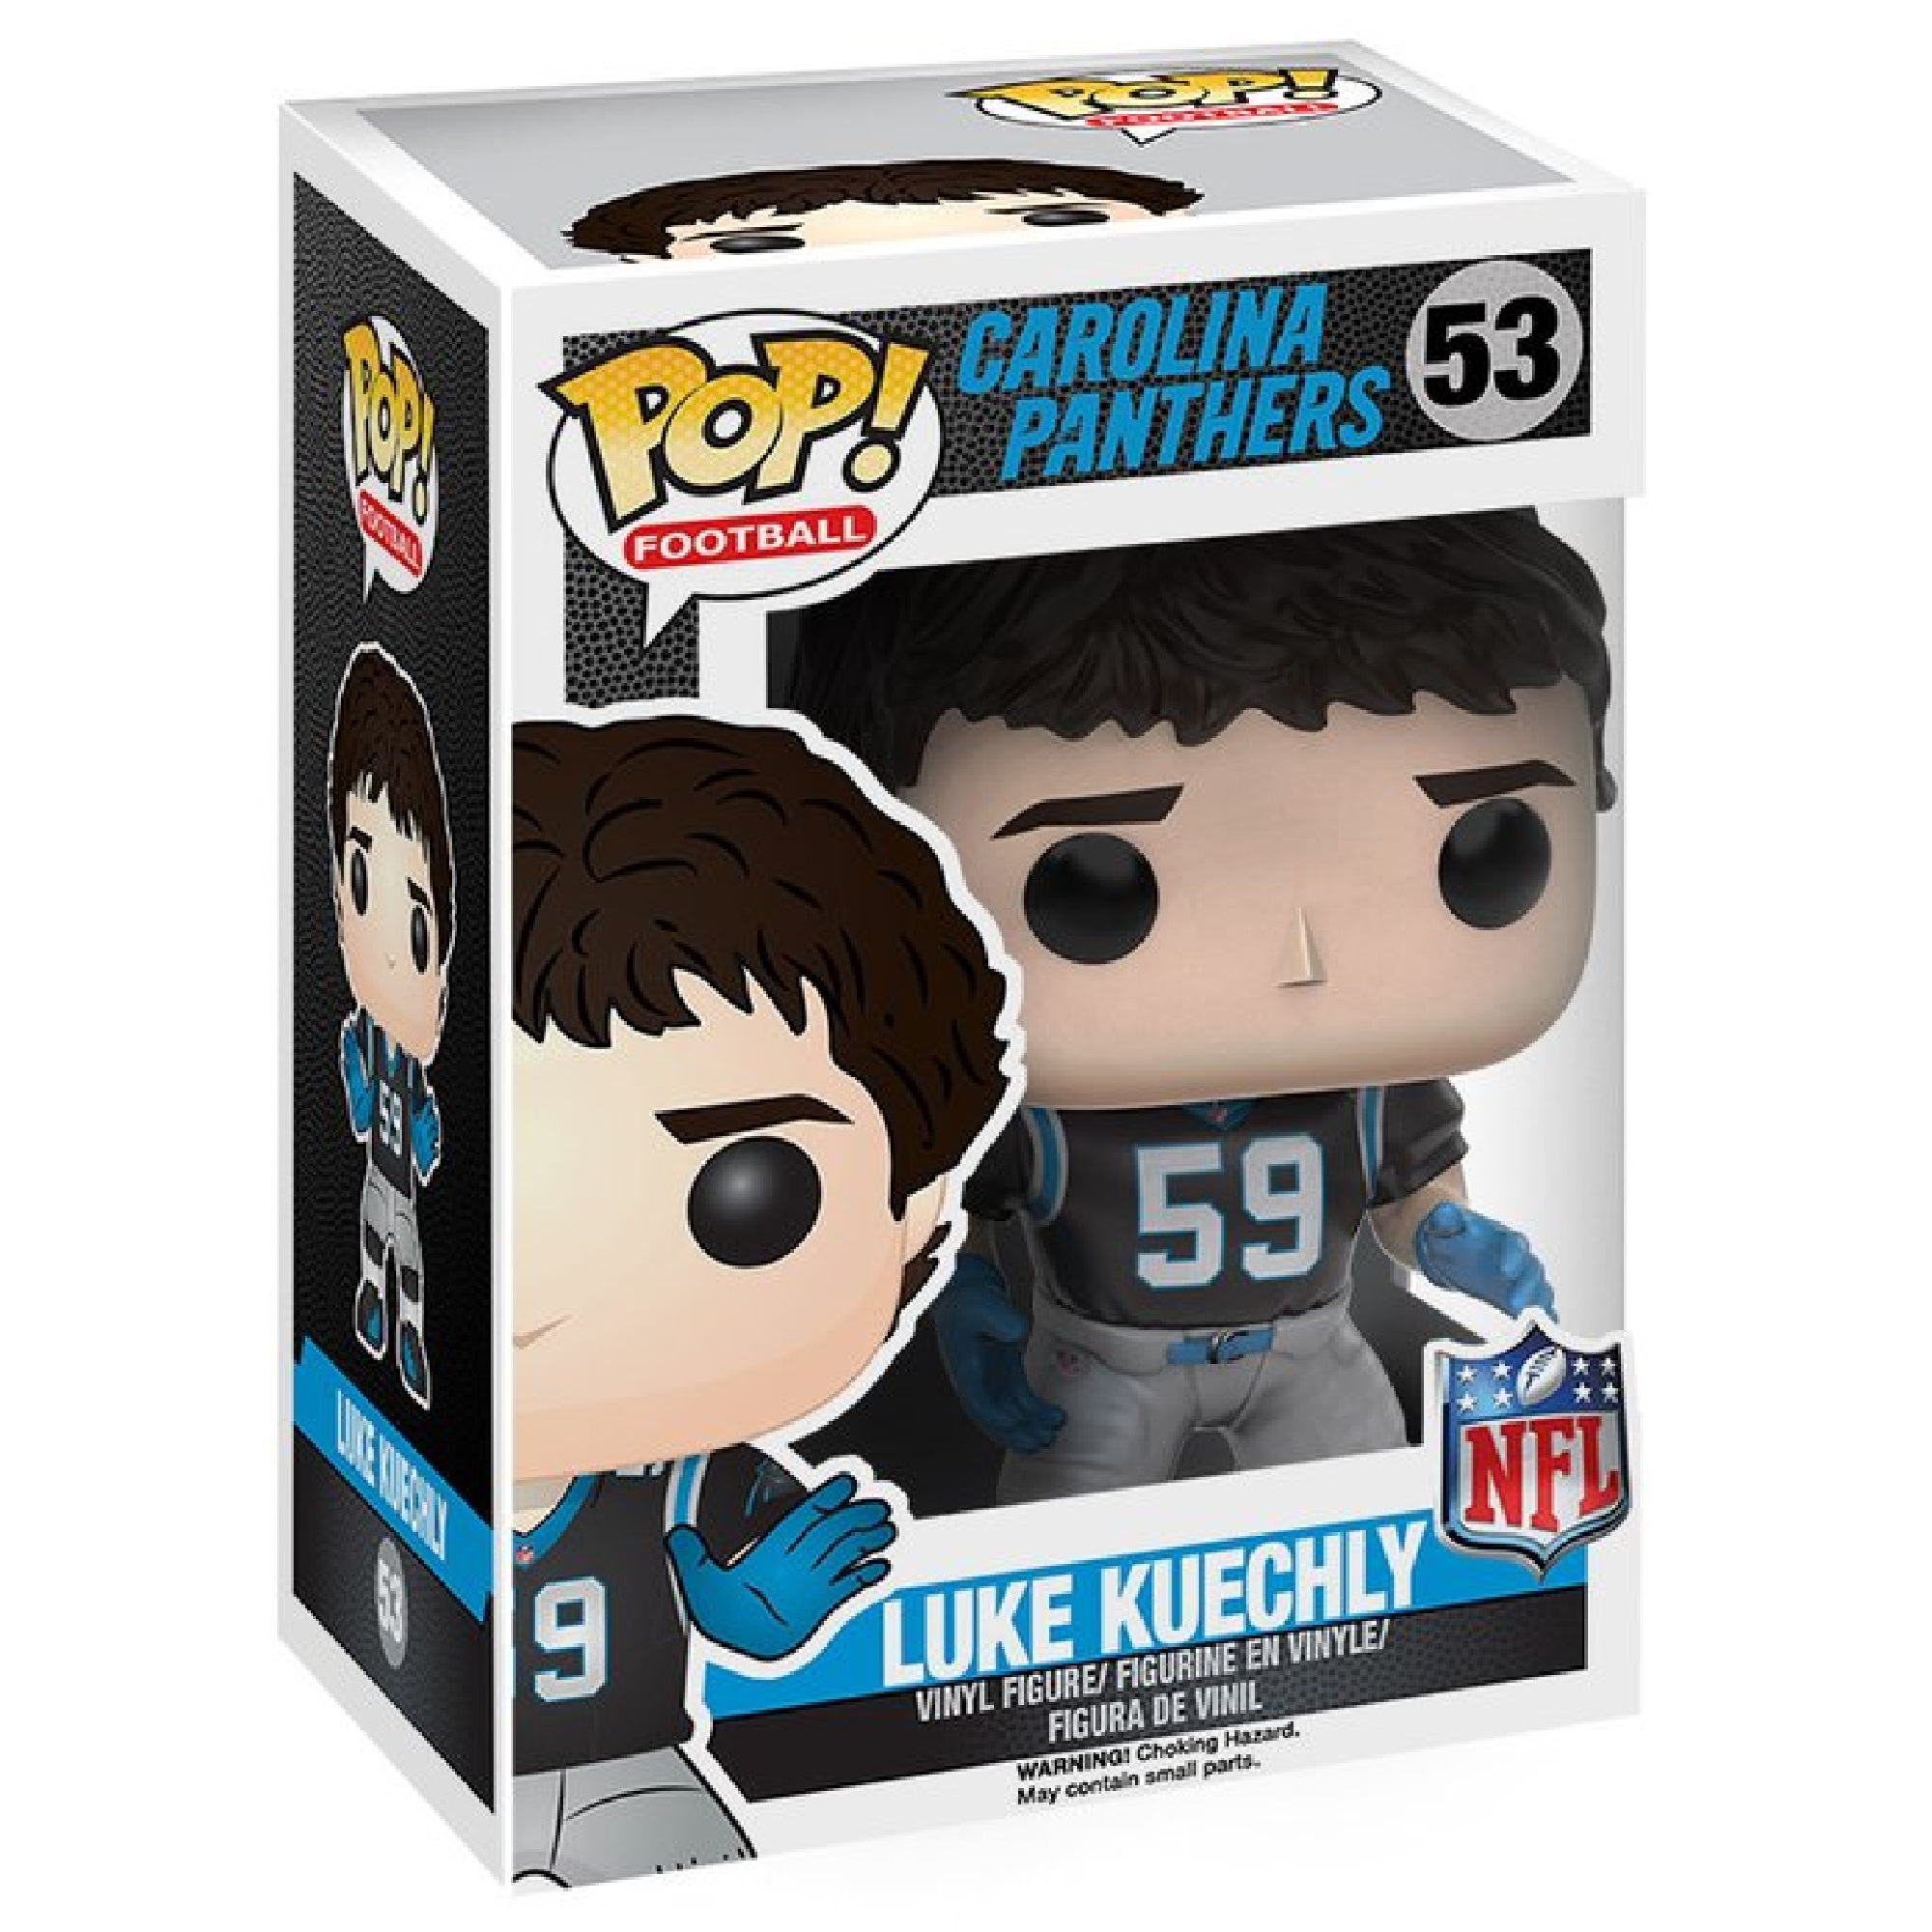 Funko Pop NFL Football Wave 3 Carolina Panthers Luke Kuechly Vinyl Action Figure eBay